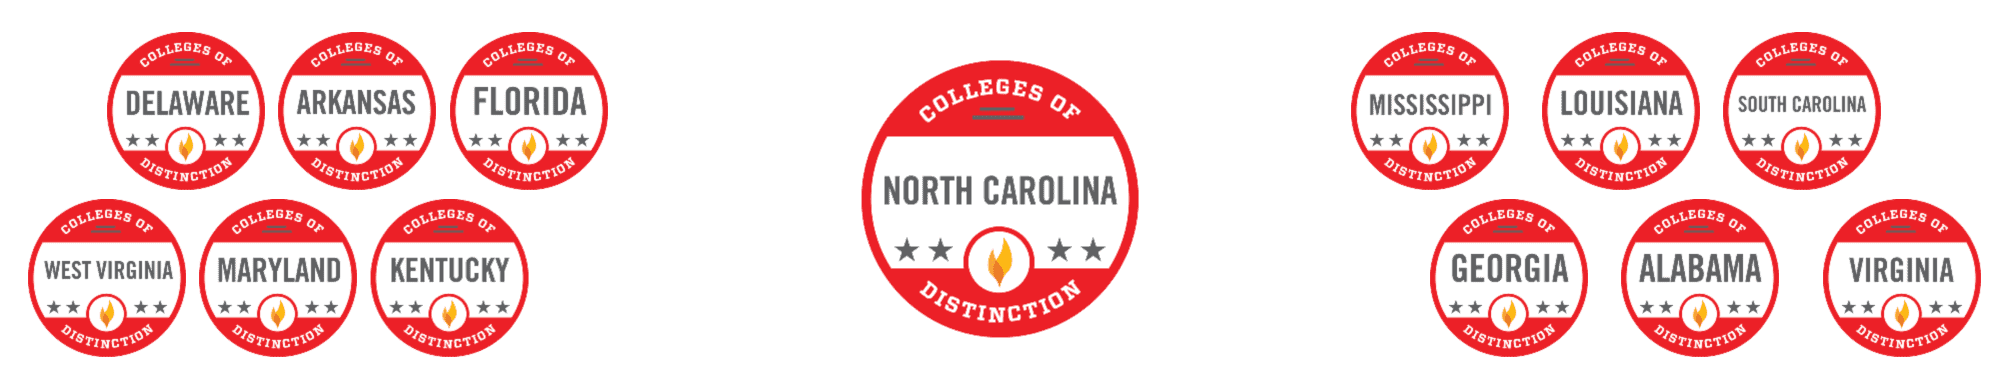 The Best Colleges of Distinction in the Southeast Region